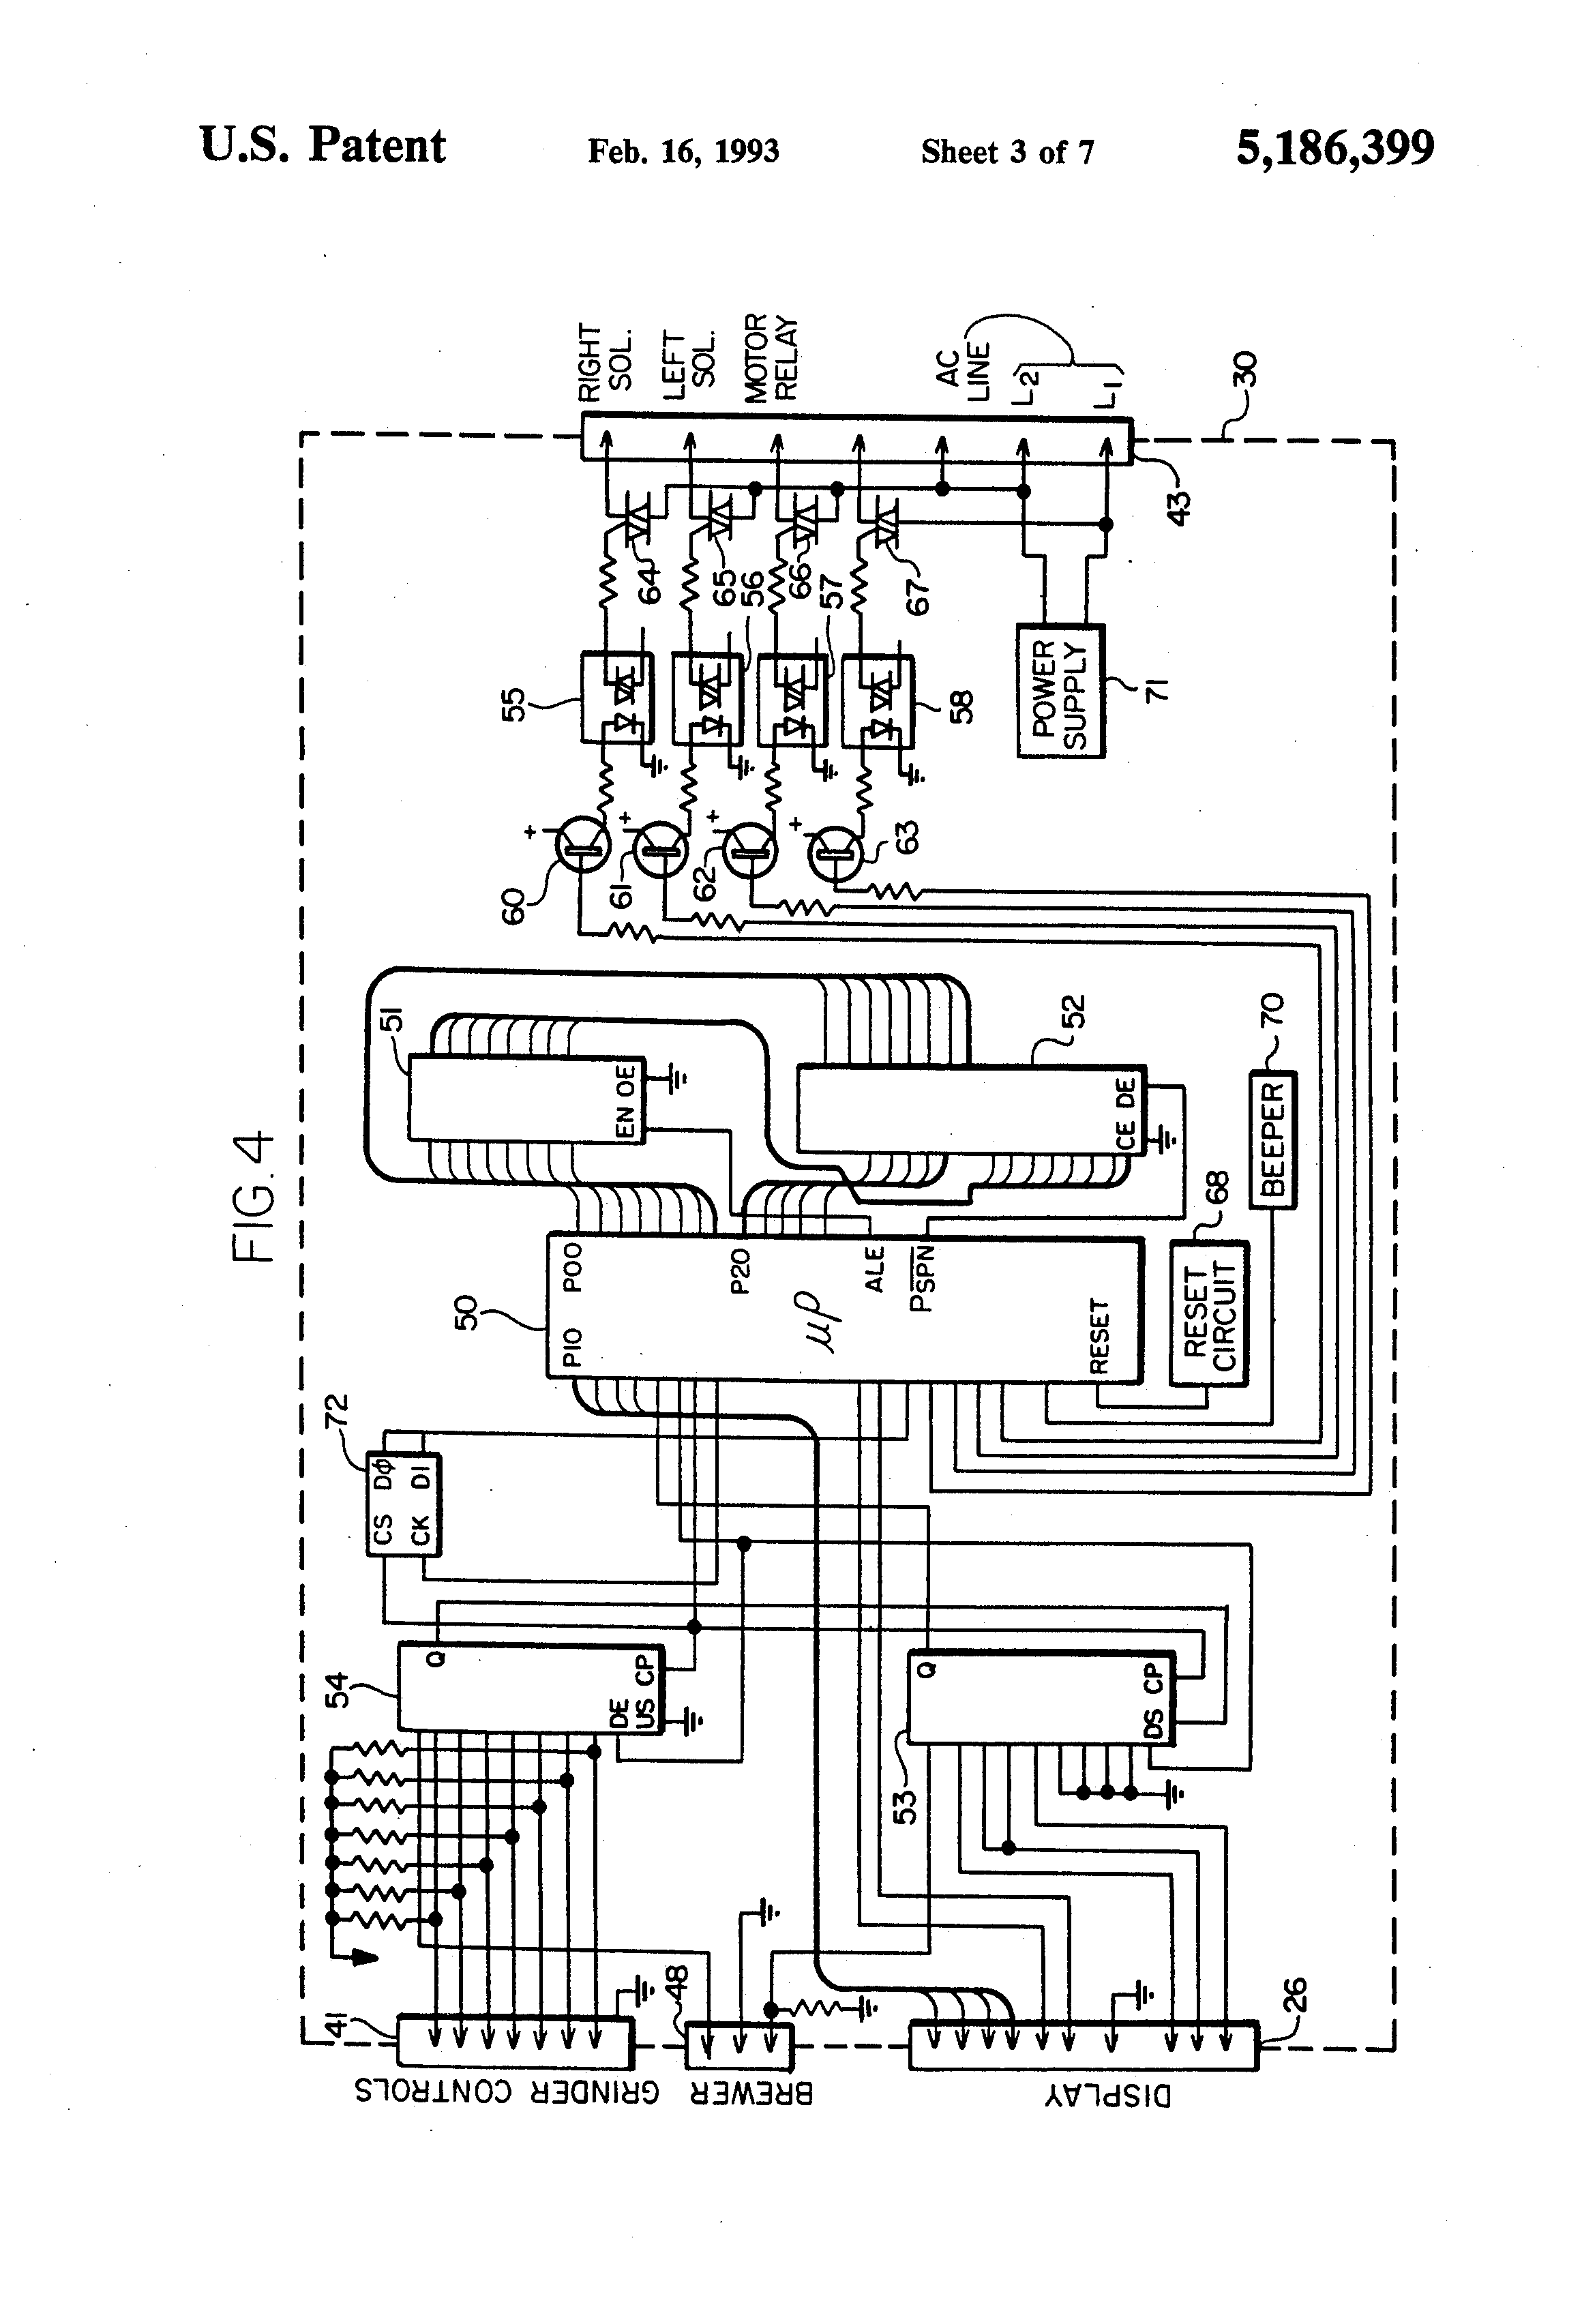 Grinder Wiring Diagram Understanding And Troubleshooting The Lincoln 100 Revtech Coil For A Bunn Coffee Maker Patent Us5186399 Digital Control System